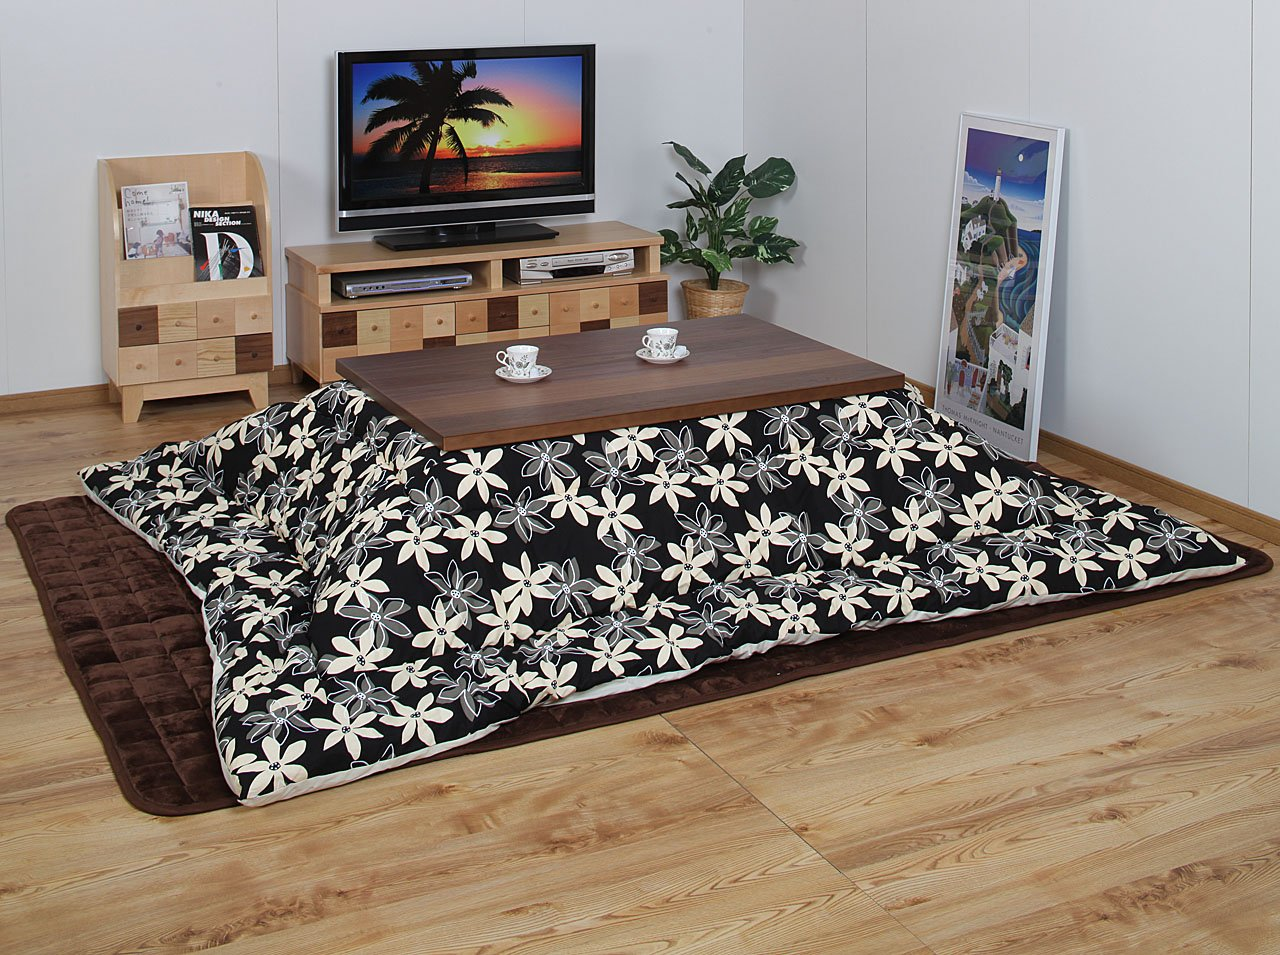 Modern kotatsu futon rectangle (205 x 315 cm) Marie pattern black 54625210